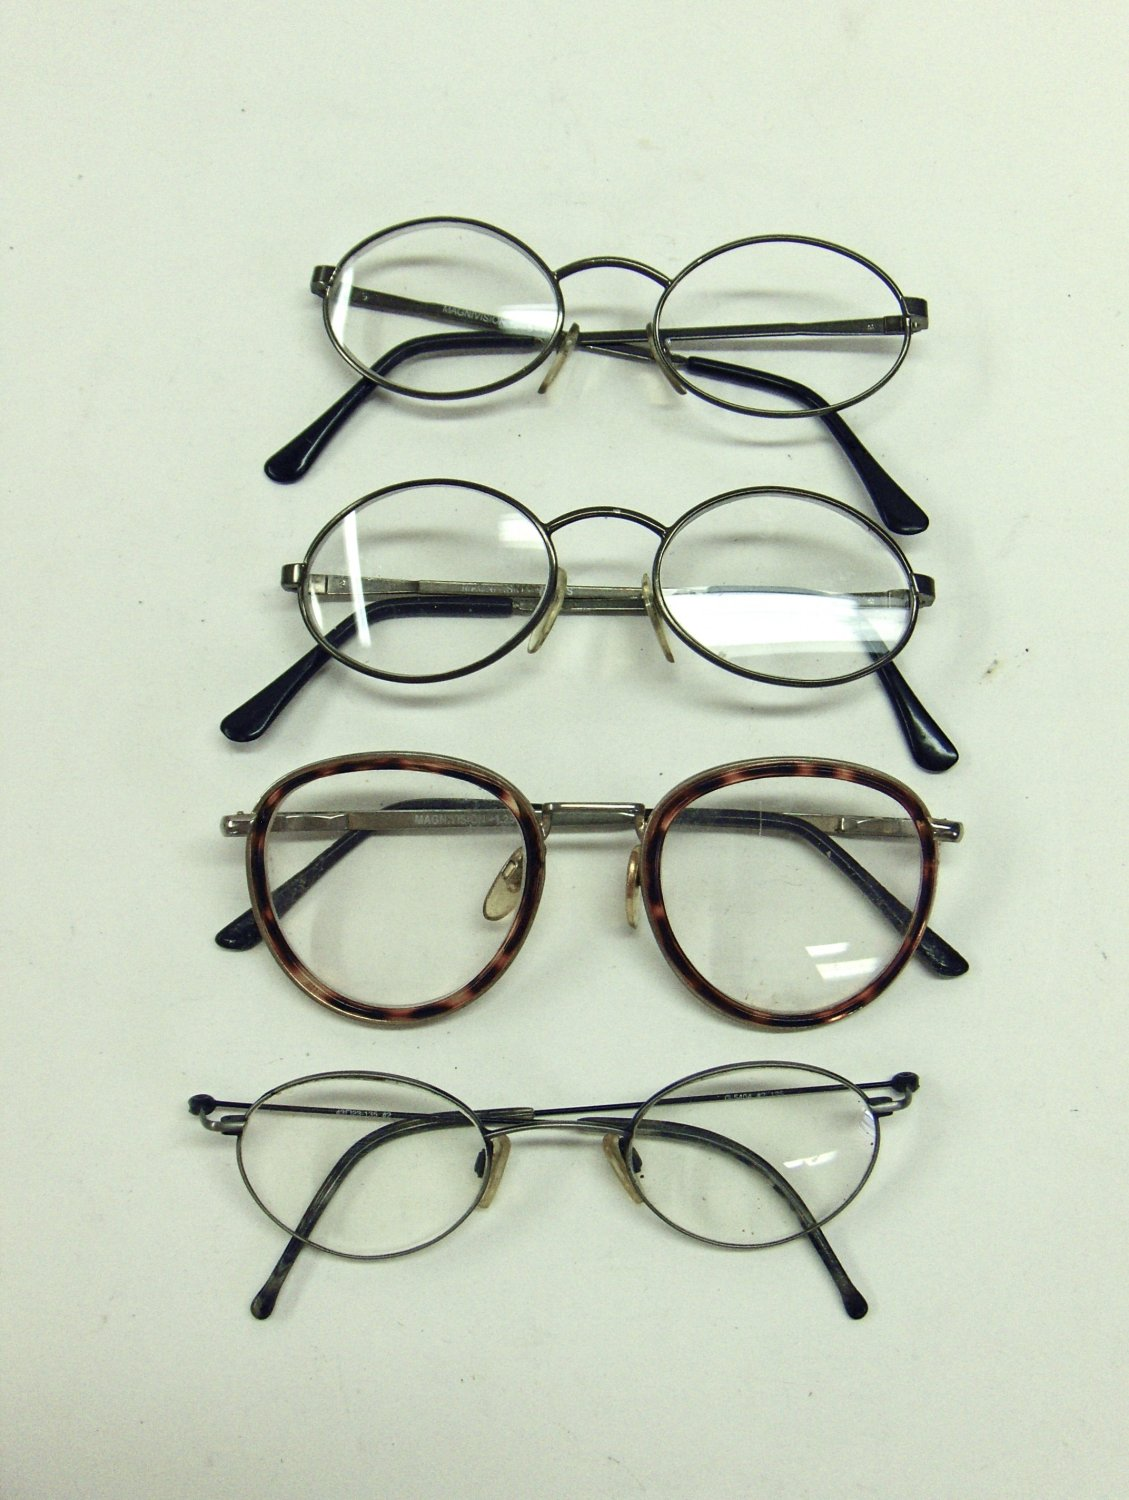 Fashion eyeglasses non prescription 29